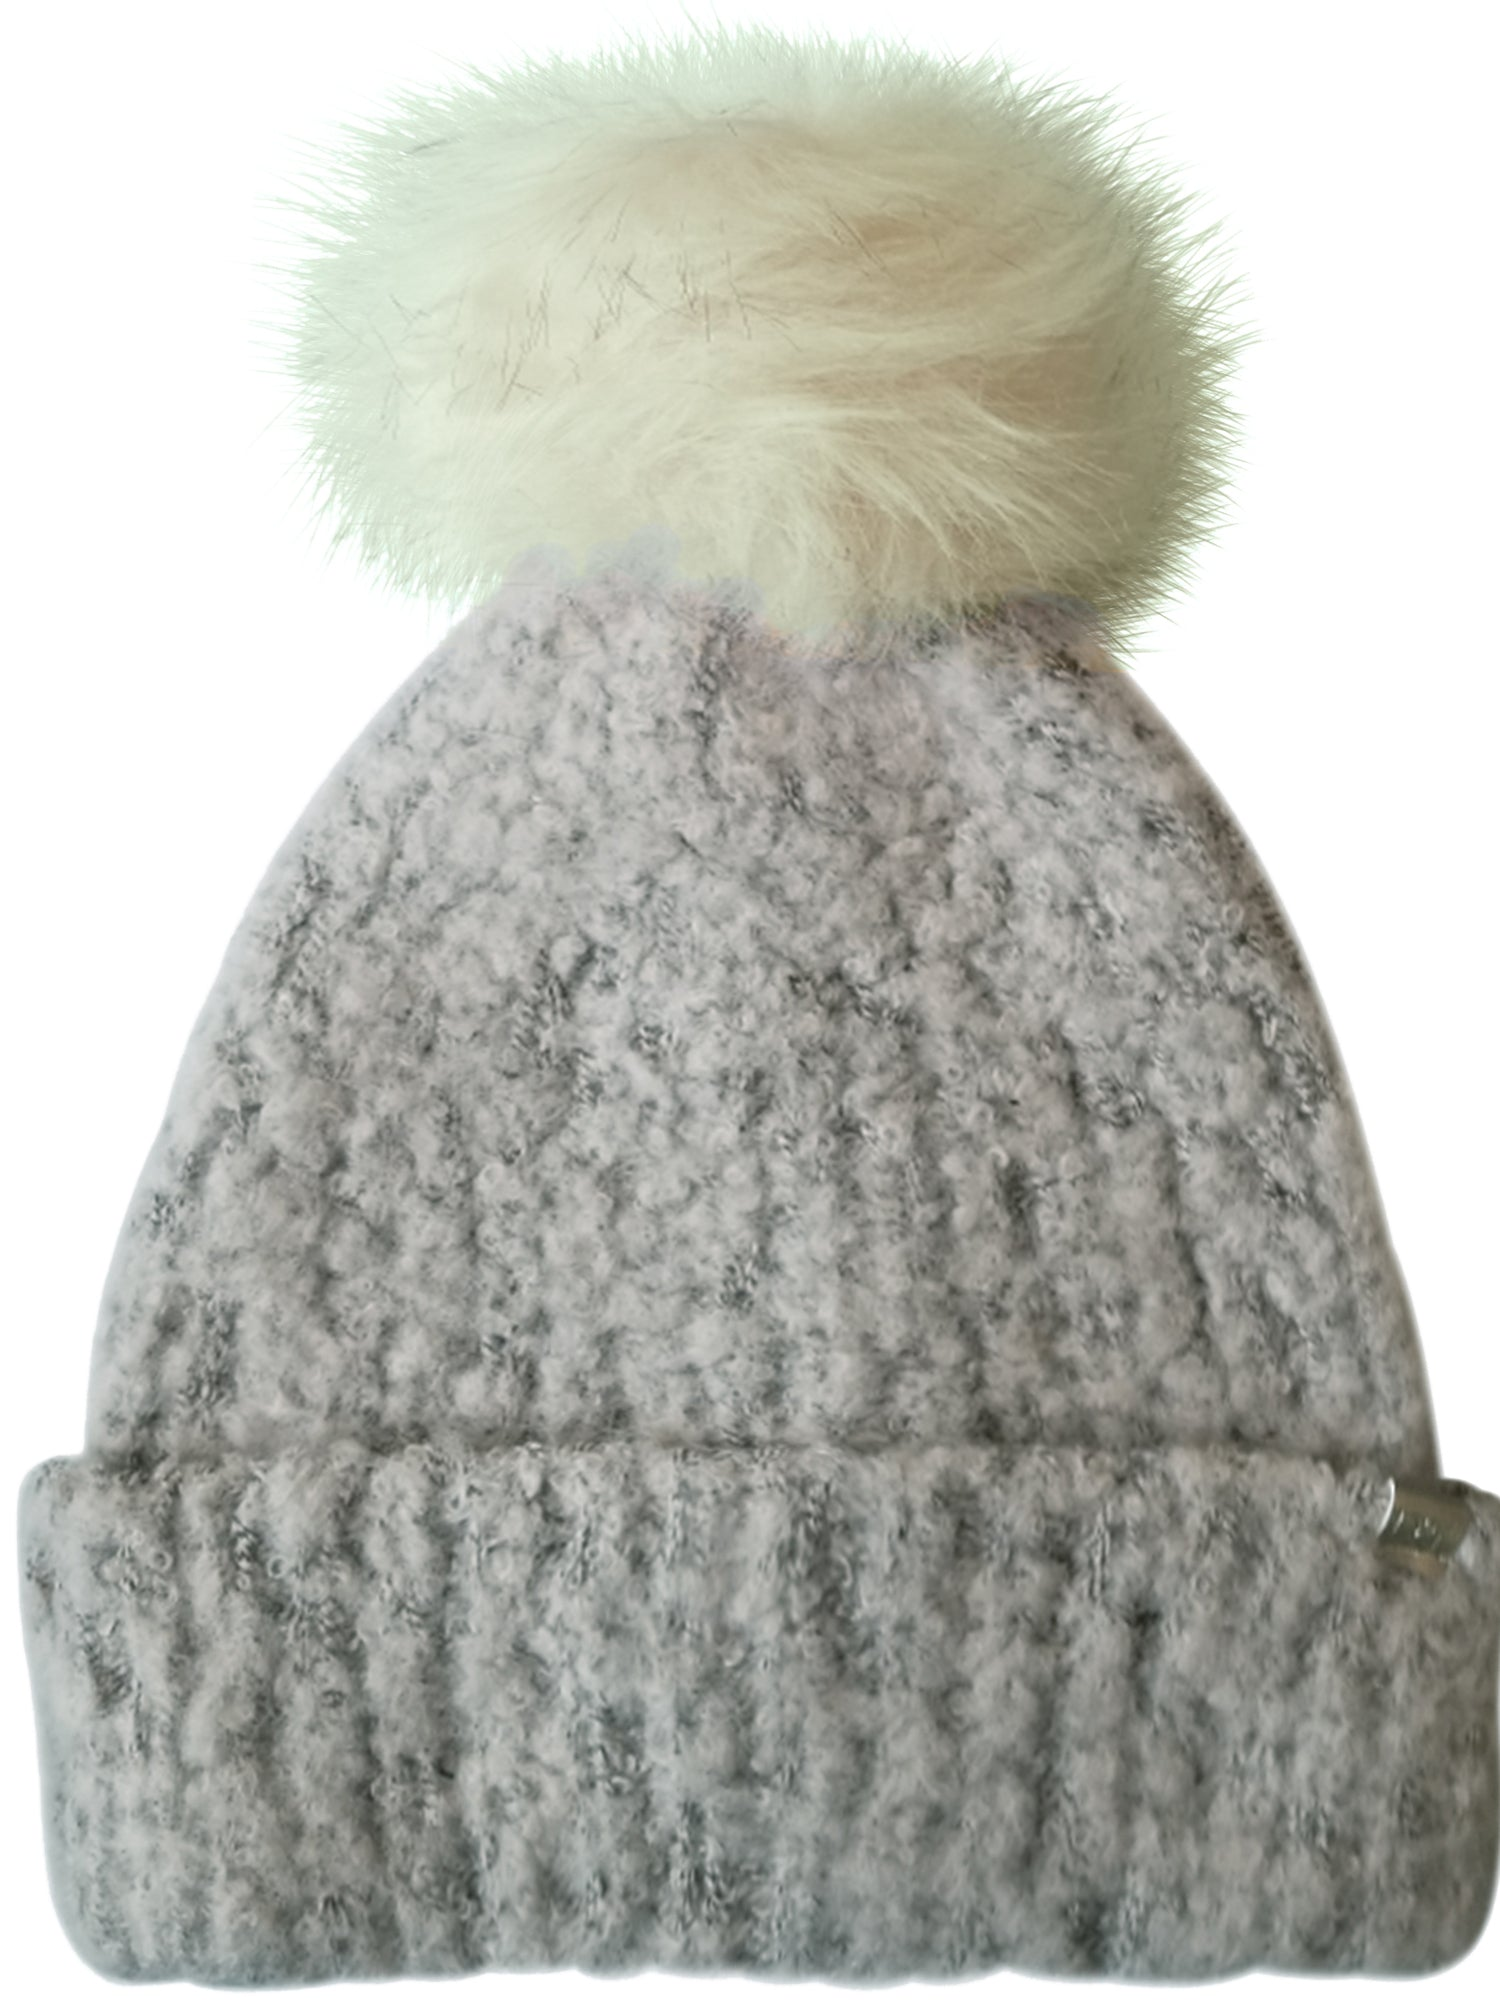 Slouchy Beanie in Pink and Gray with Faux Fur Pom Pom